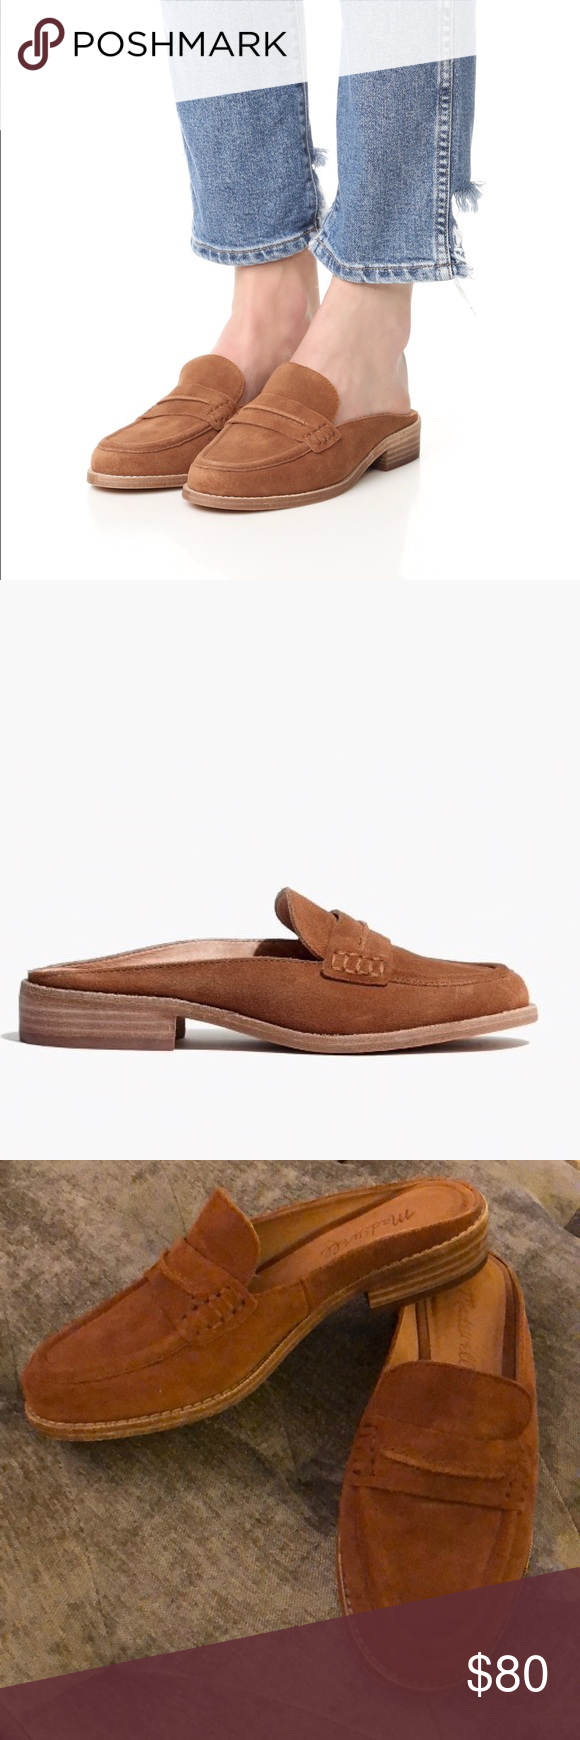 2f2b3ce9a939 Madewell Elinor Loafer Mule Madewell Elinor Loafer Mule In Brown suede  leather in a size 6. These run true to size. Only worn twice and in  excellent ...